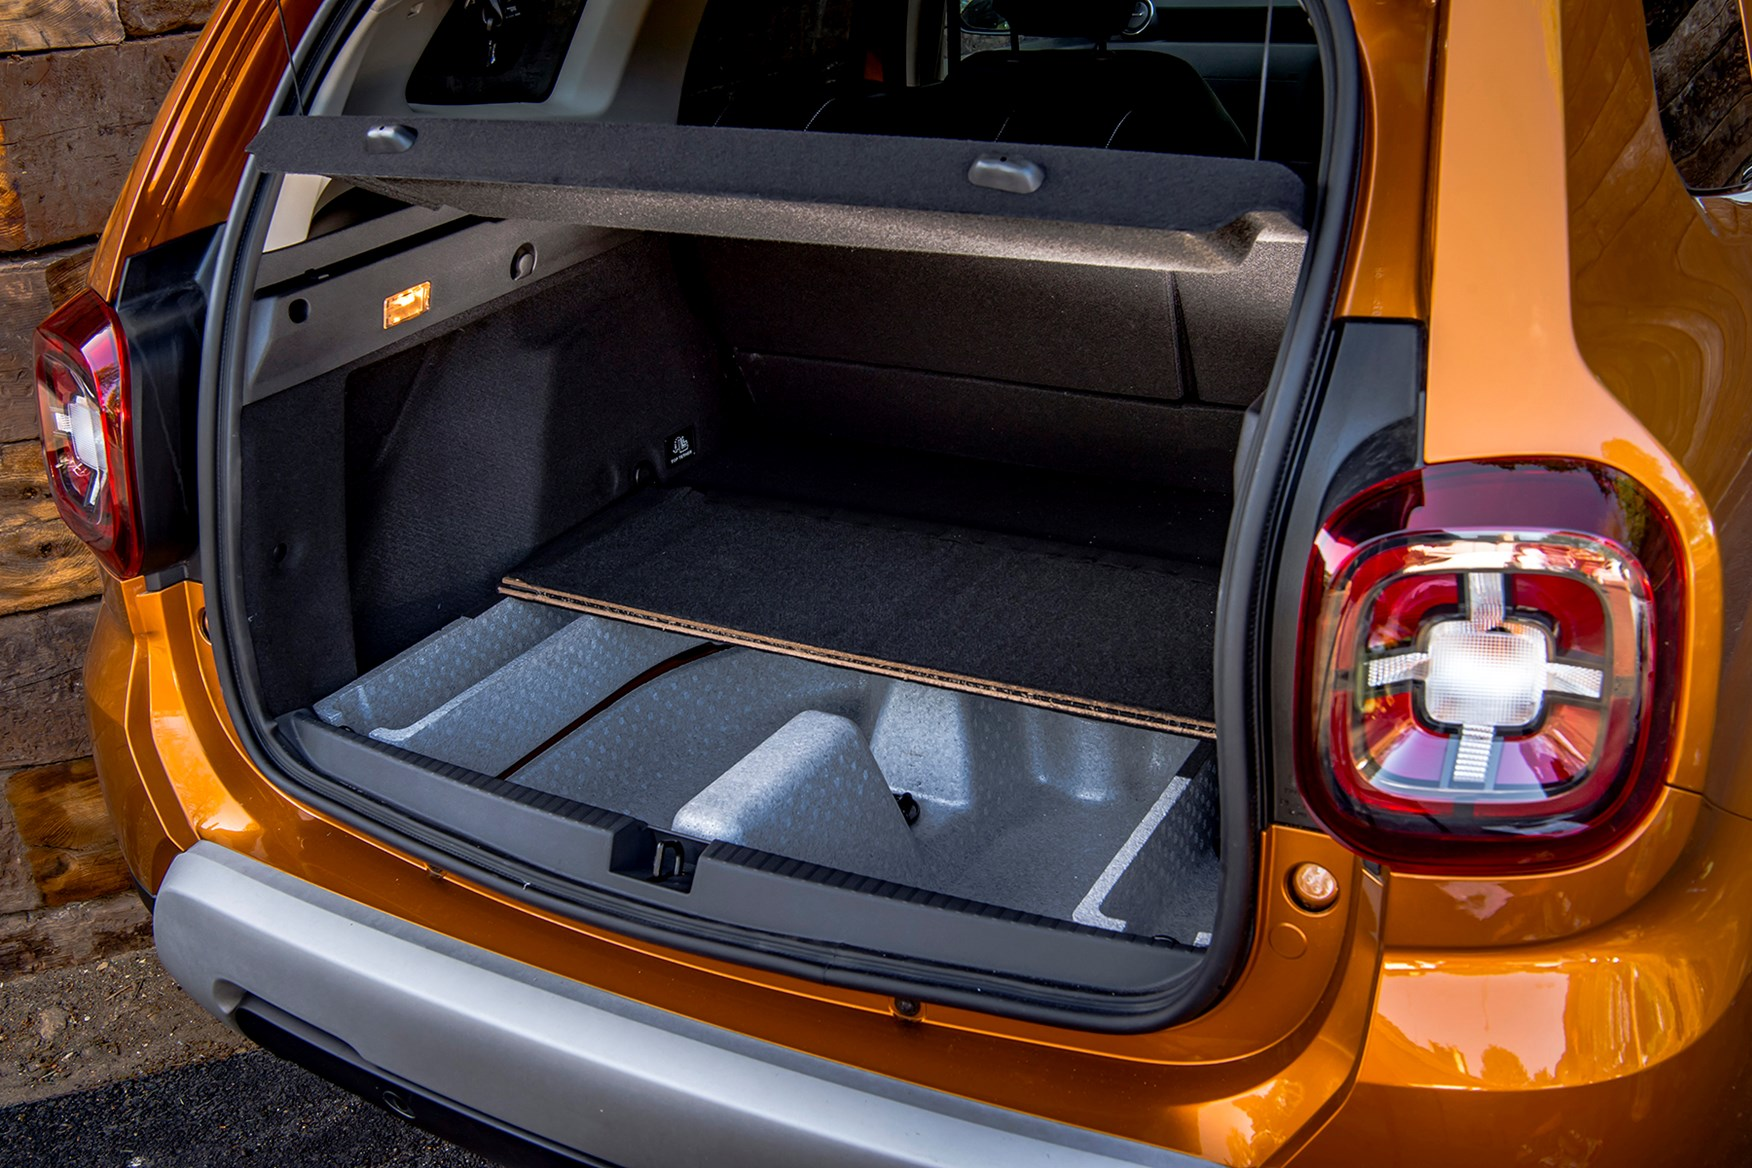 dacia duster suv review features safety and practicality parkers. Black Bedroom Furniture Sets. Home Design Ideas